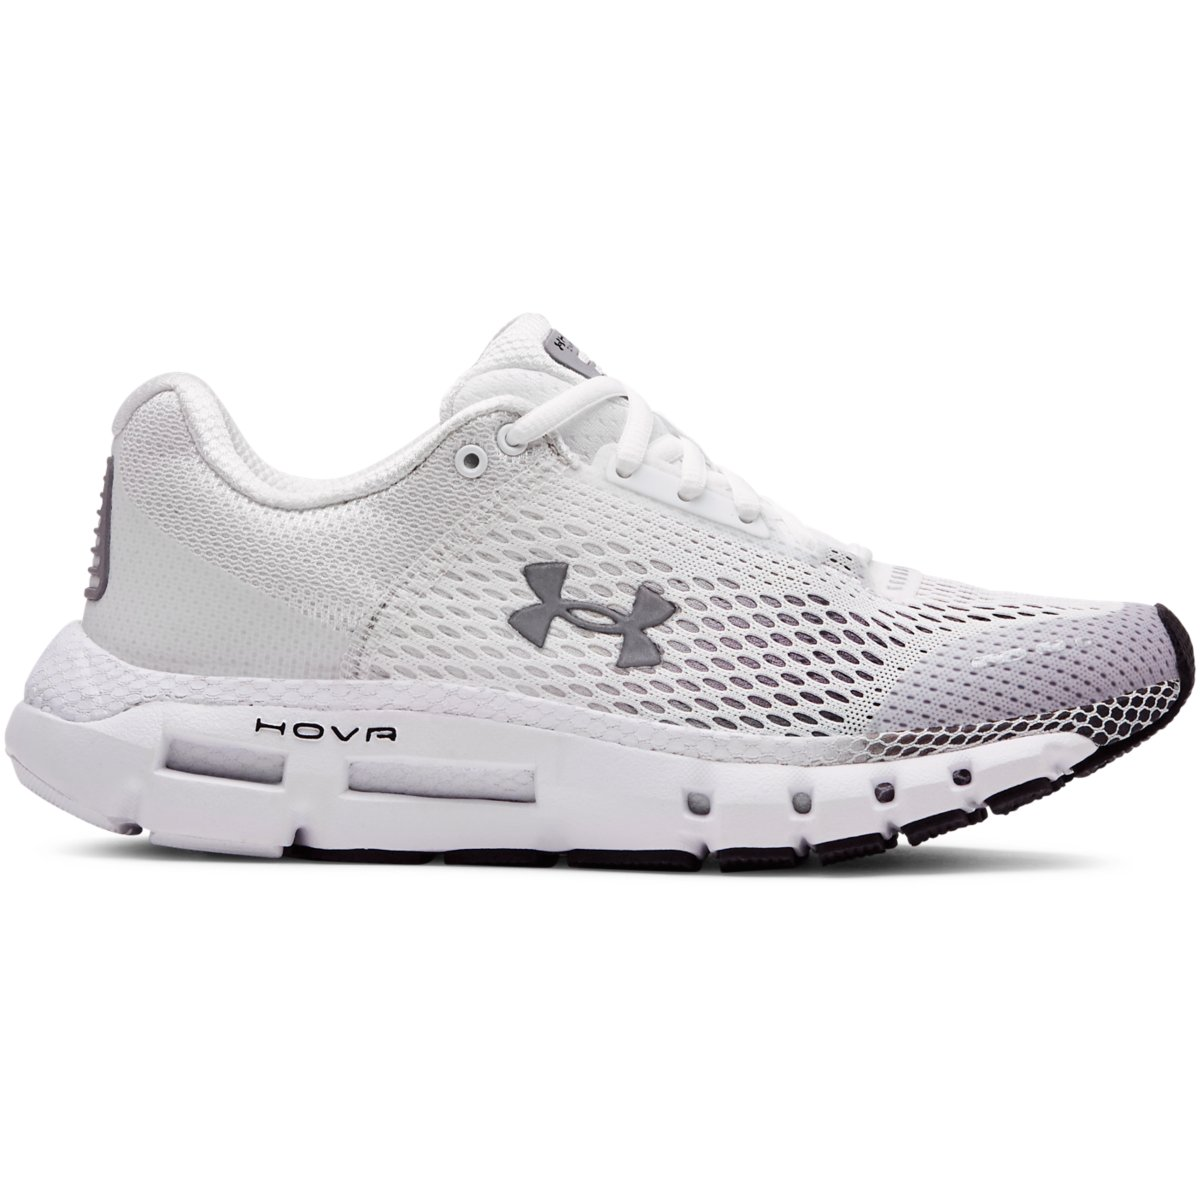 Under Armour Women's HOVR Infinite Run Shoe